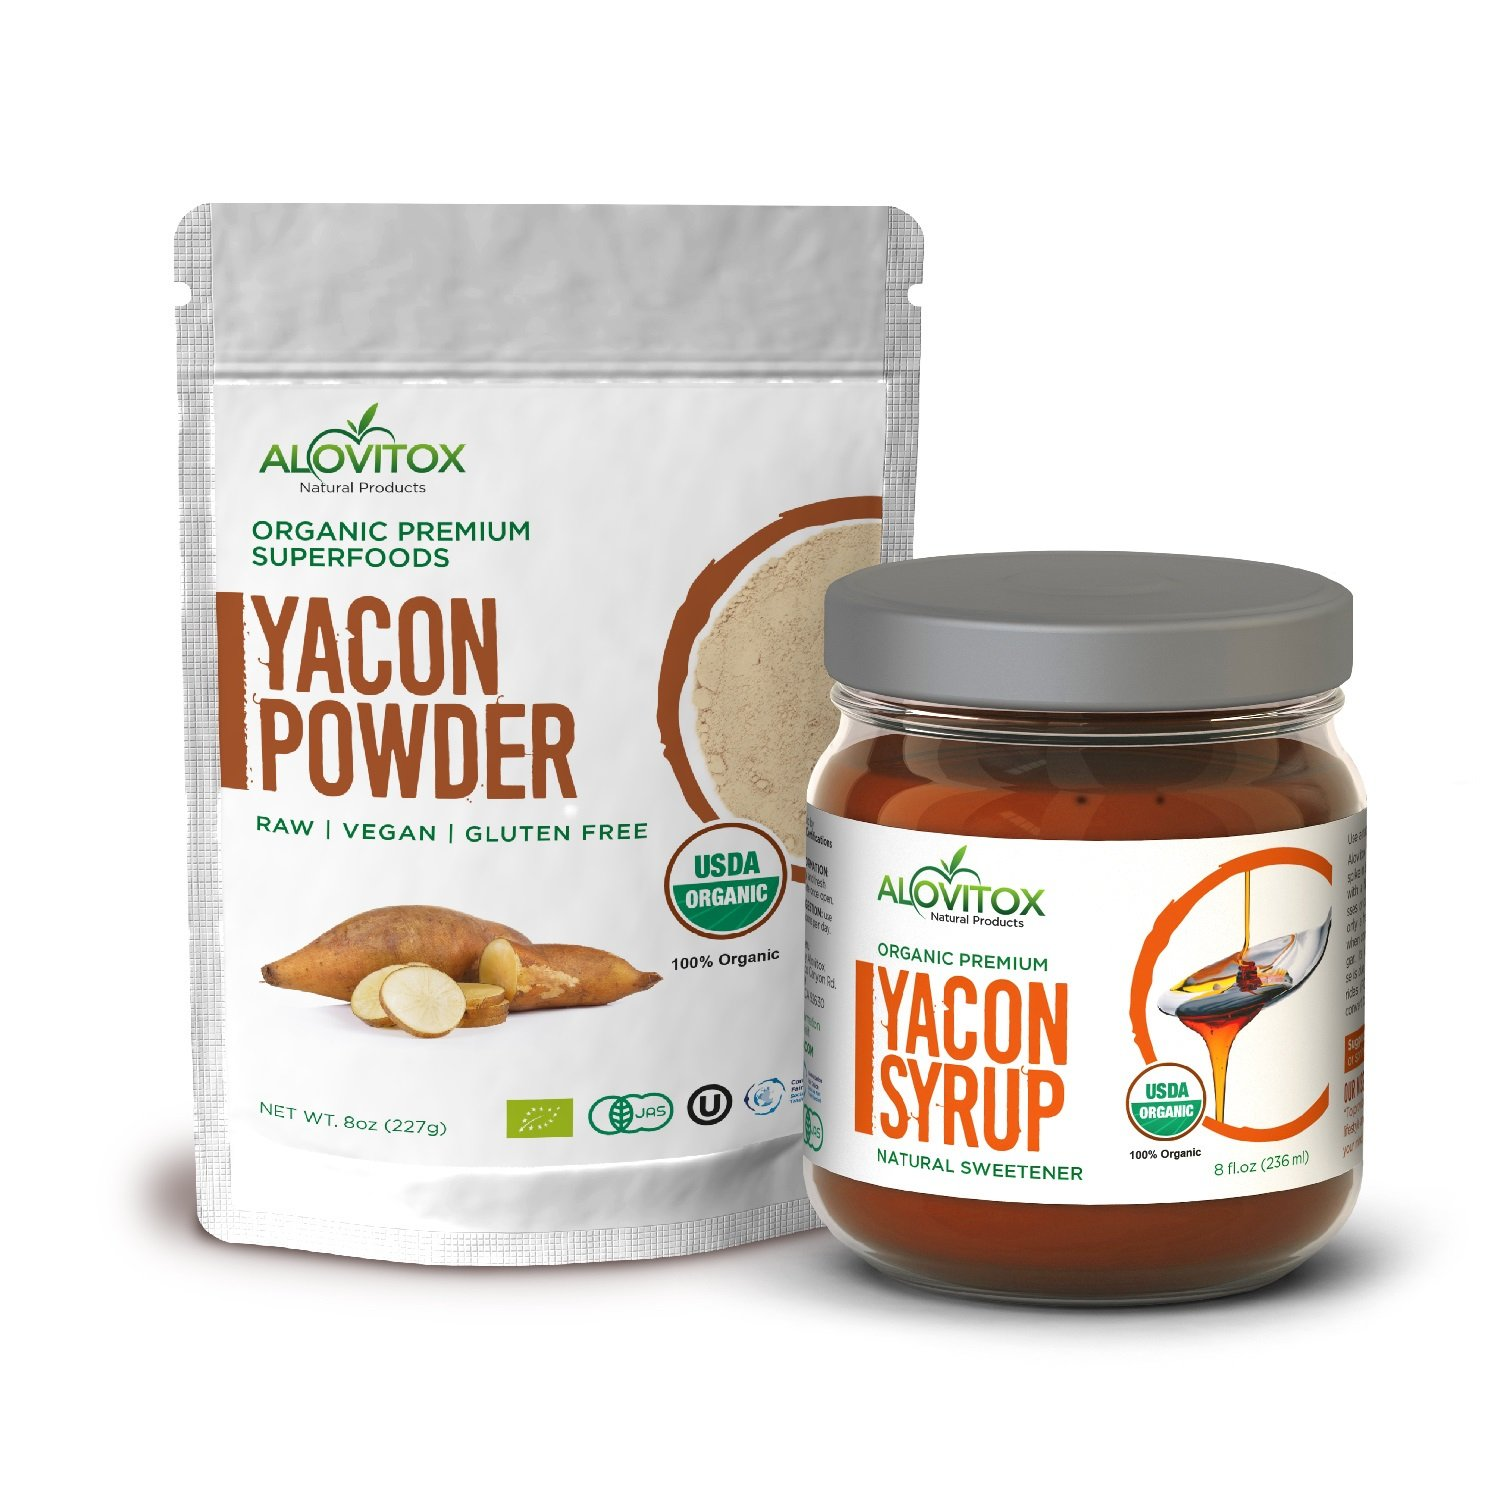 Yacon Syrup & Powder Pack - All Natural Sweetener - Sugar Substitue - USDA Certified Organic - Raw Vegan Gluten Free by Alovitox